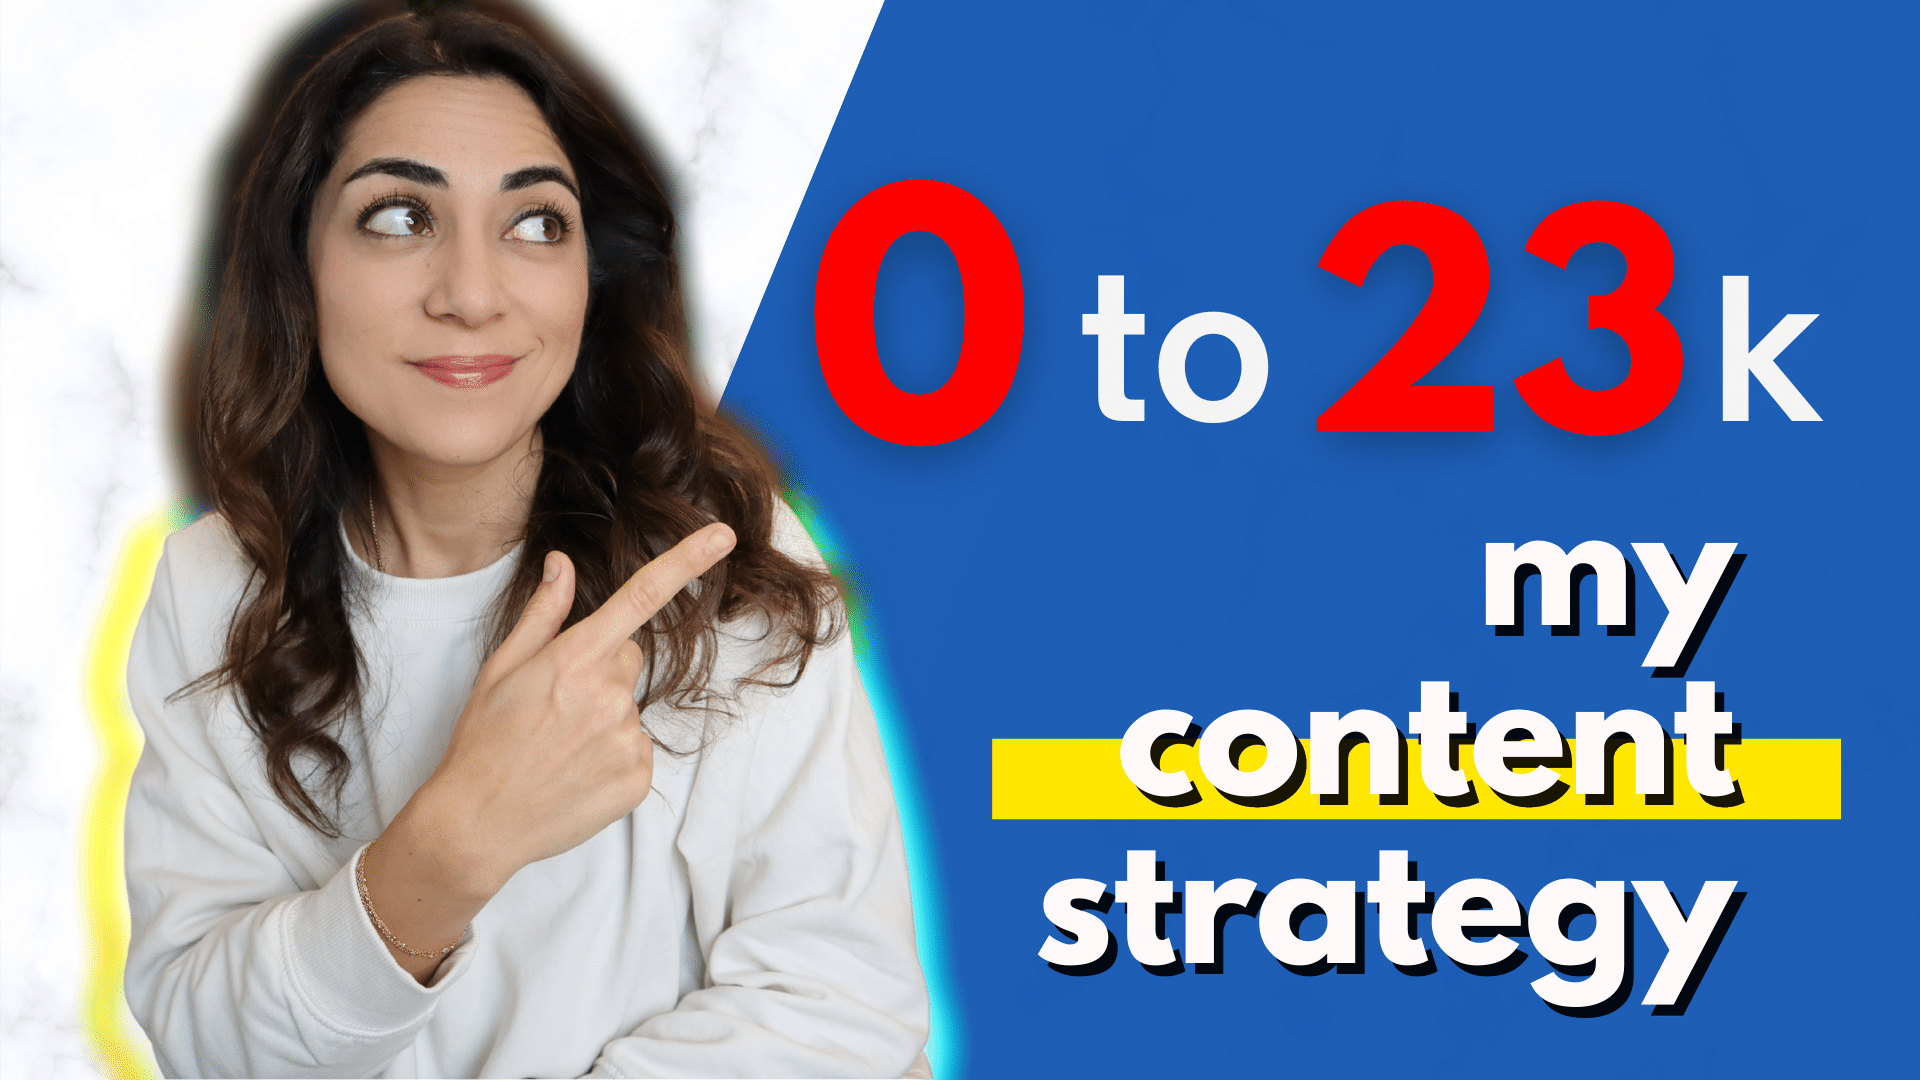 0 to 23K My Content Strategy